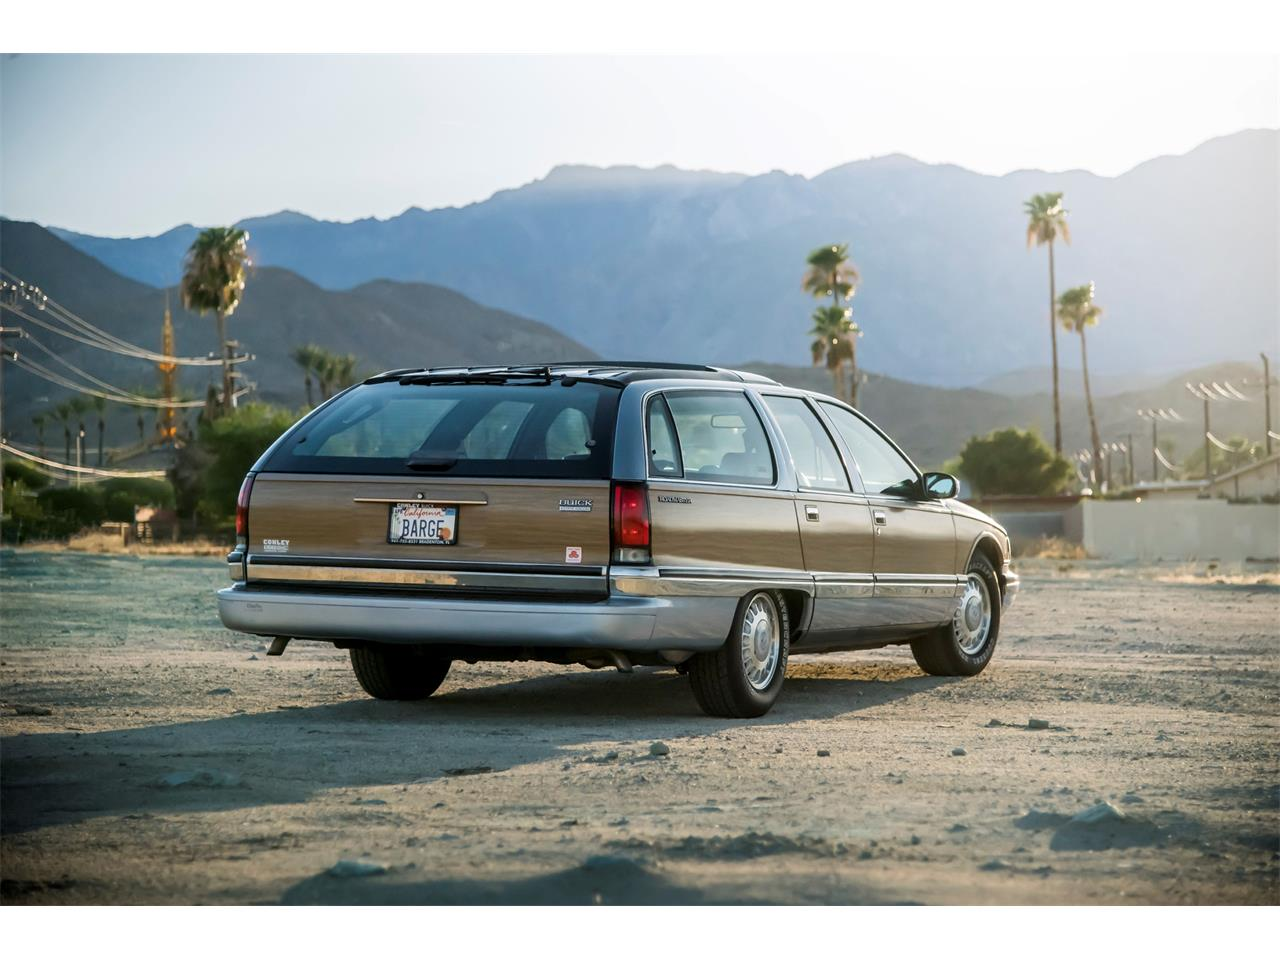 1995 Buick Roadmaster for sale in Cathedral City, CA – photo 6